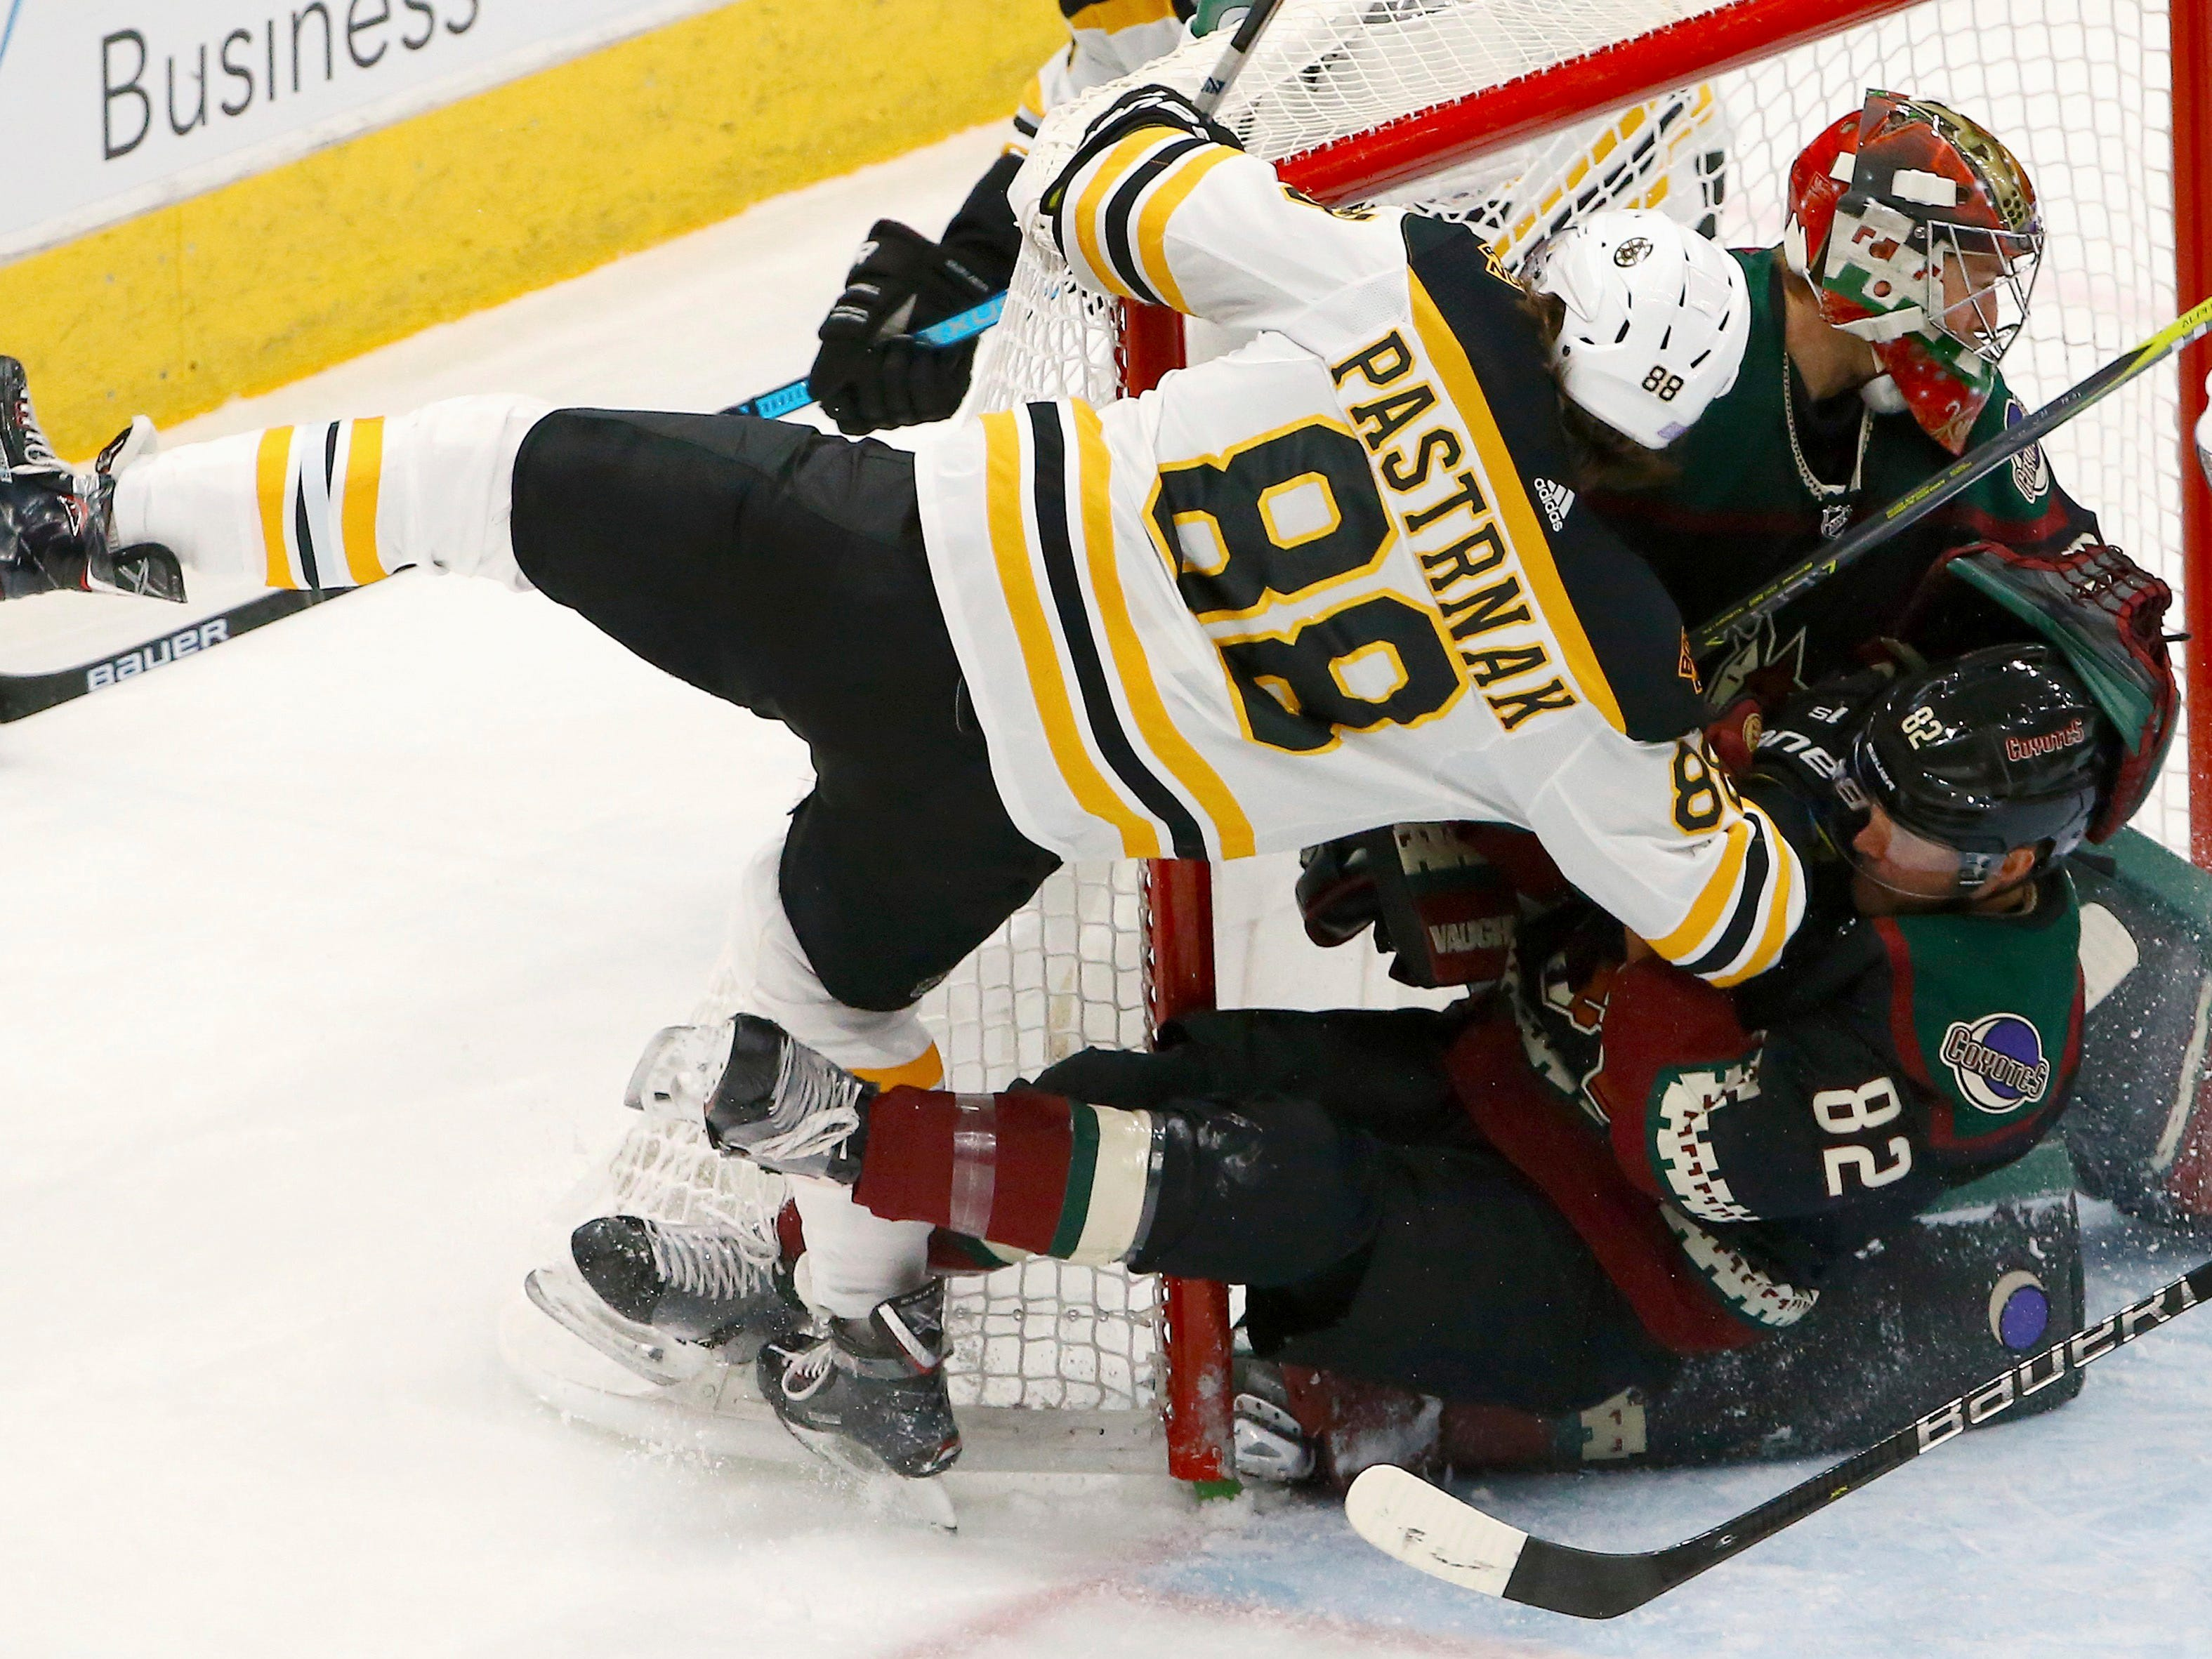 Boston Bruins right wing David Pastrnak (88) collides with Arizona Coyotes defenseman Jordan Oesterle (82) and Coyotes goaltender Darcy Kuemper, back right, during the first period of an NHL hockey game Saturday, Nov. 17, 2018, in Glendale, Ariz. (AP Photo/Ross D. Franklin)